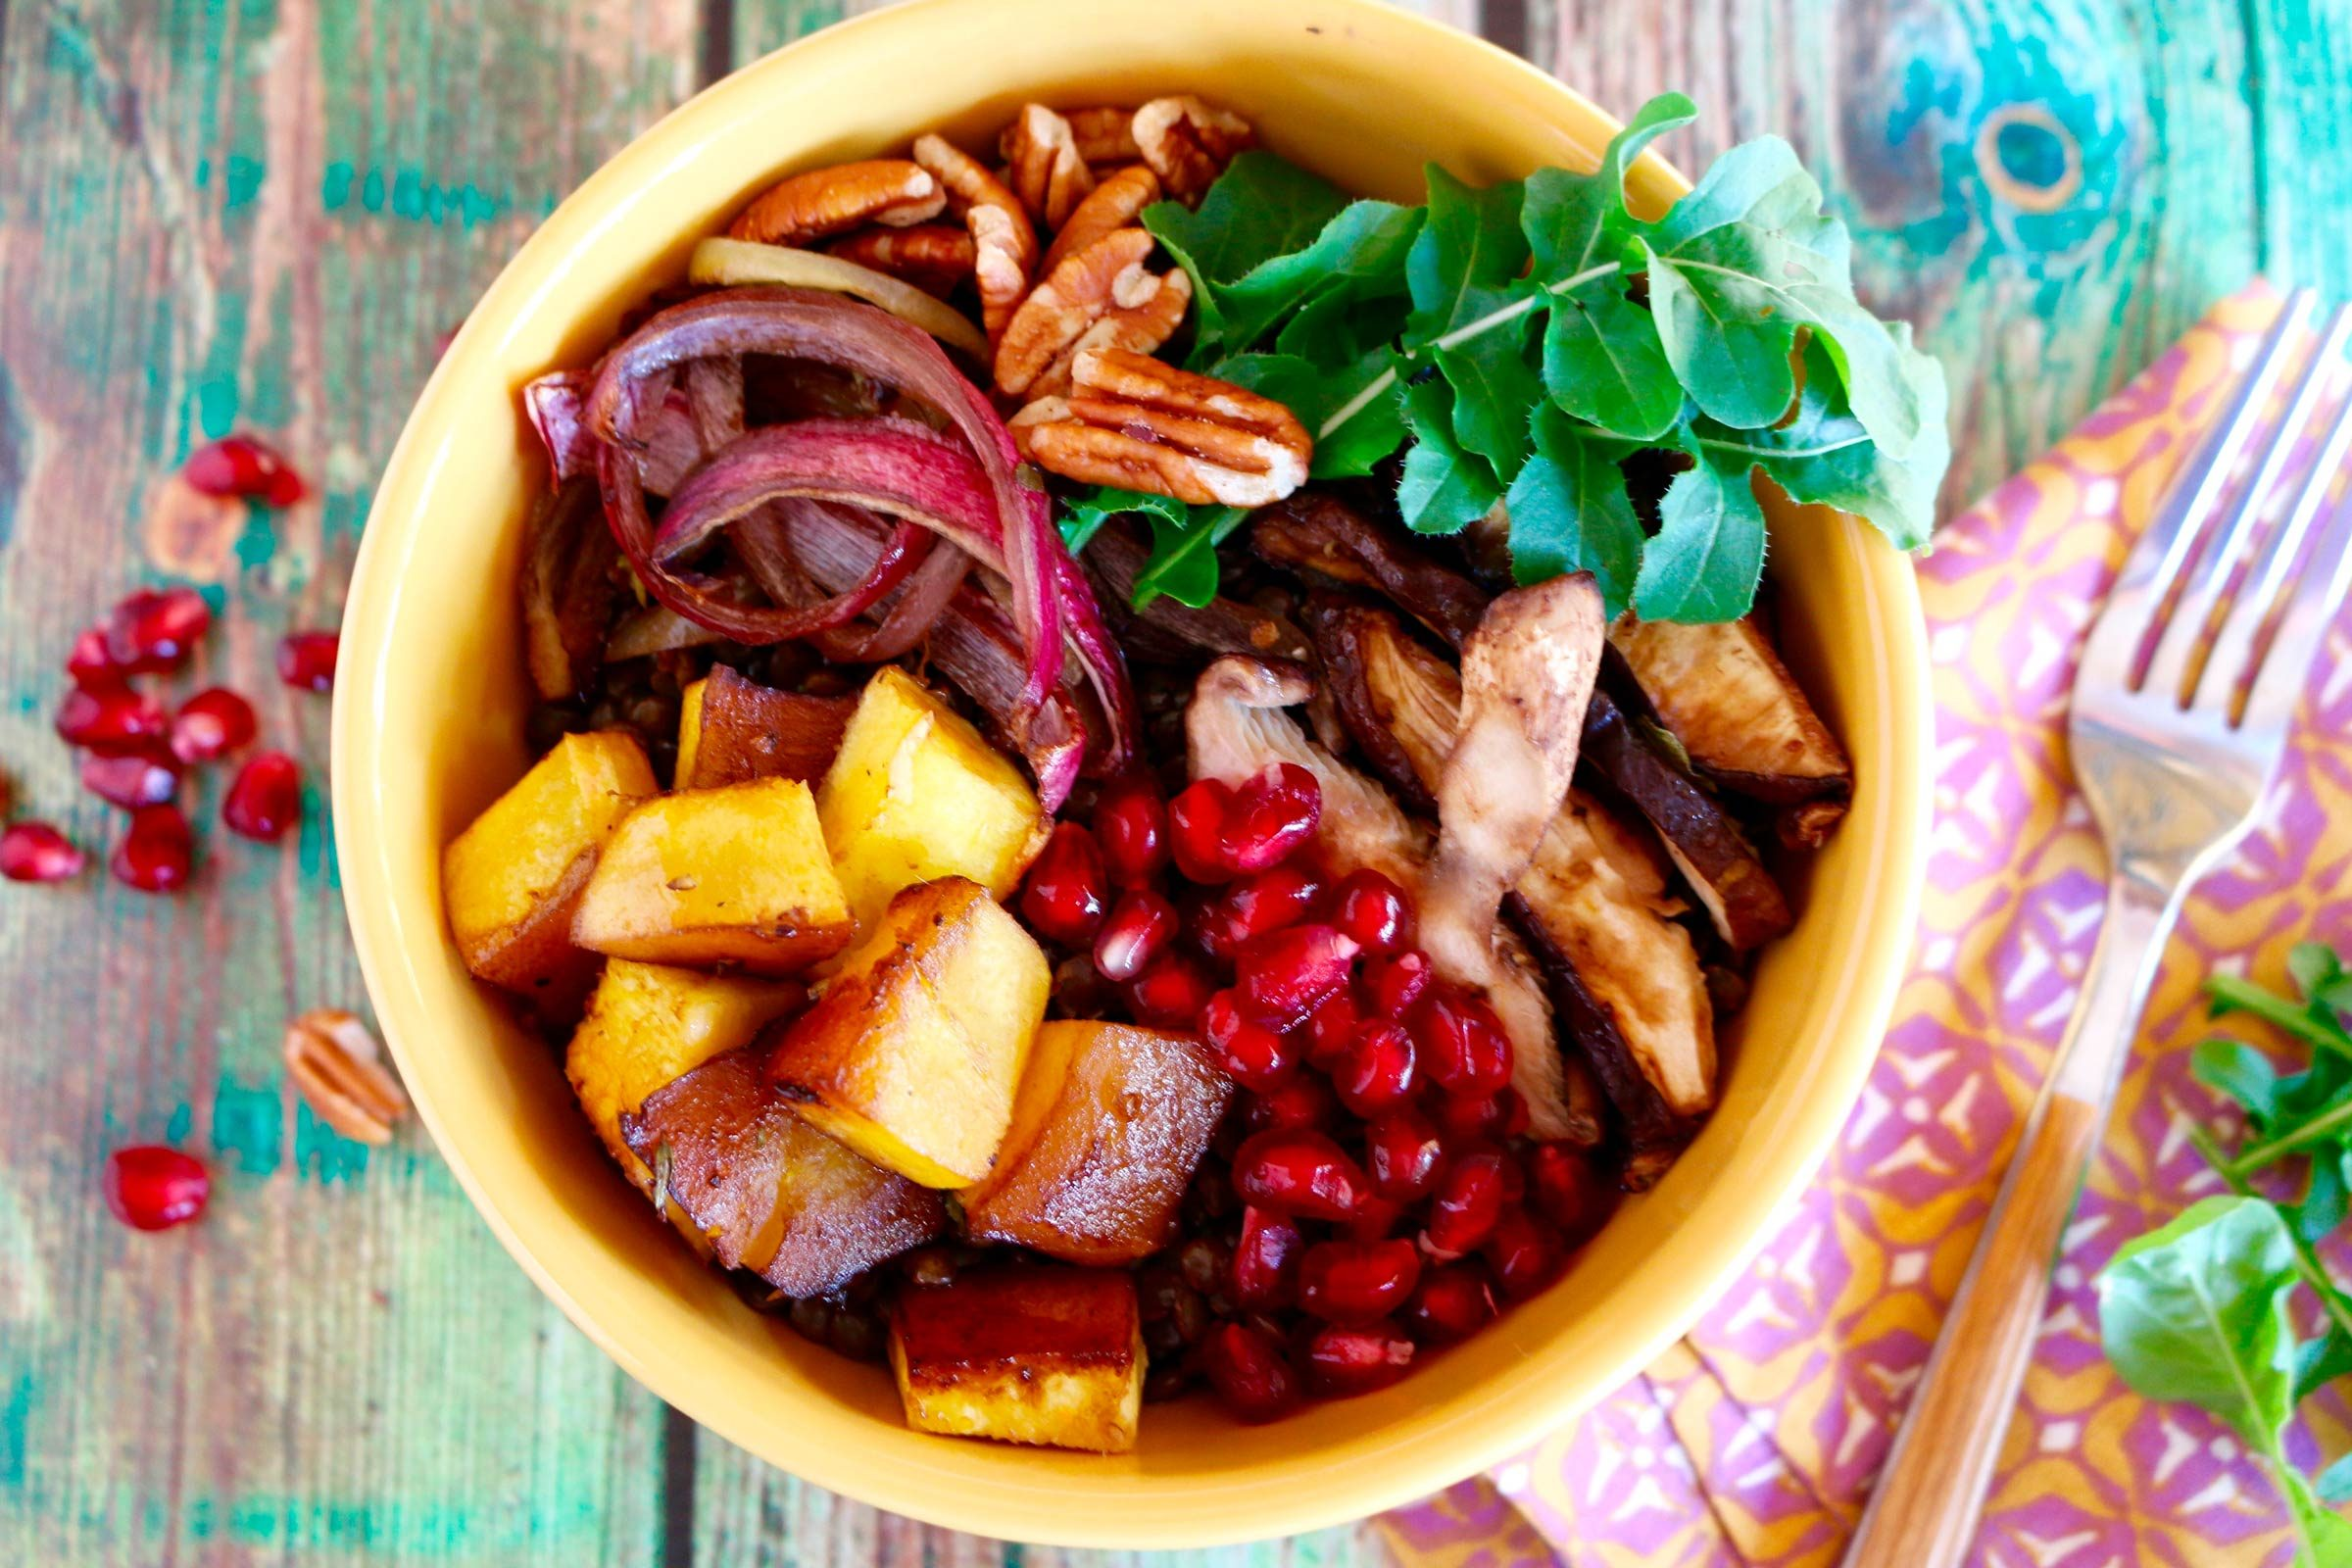 Healthy Lunch Ideas That Aren't Salad